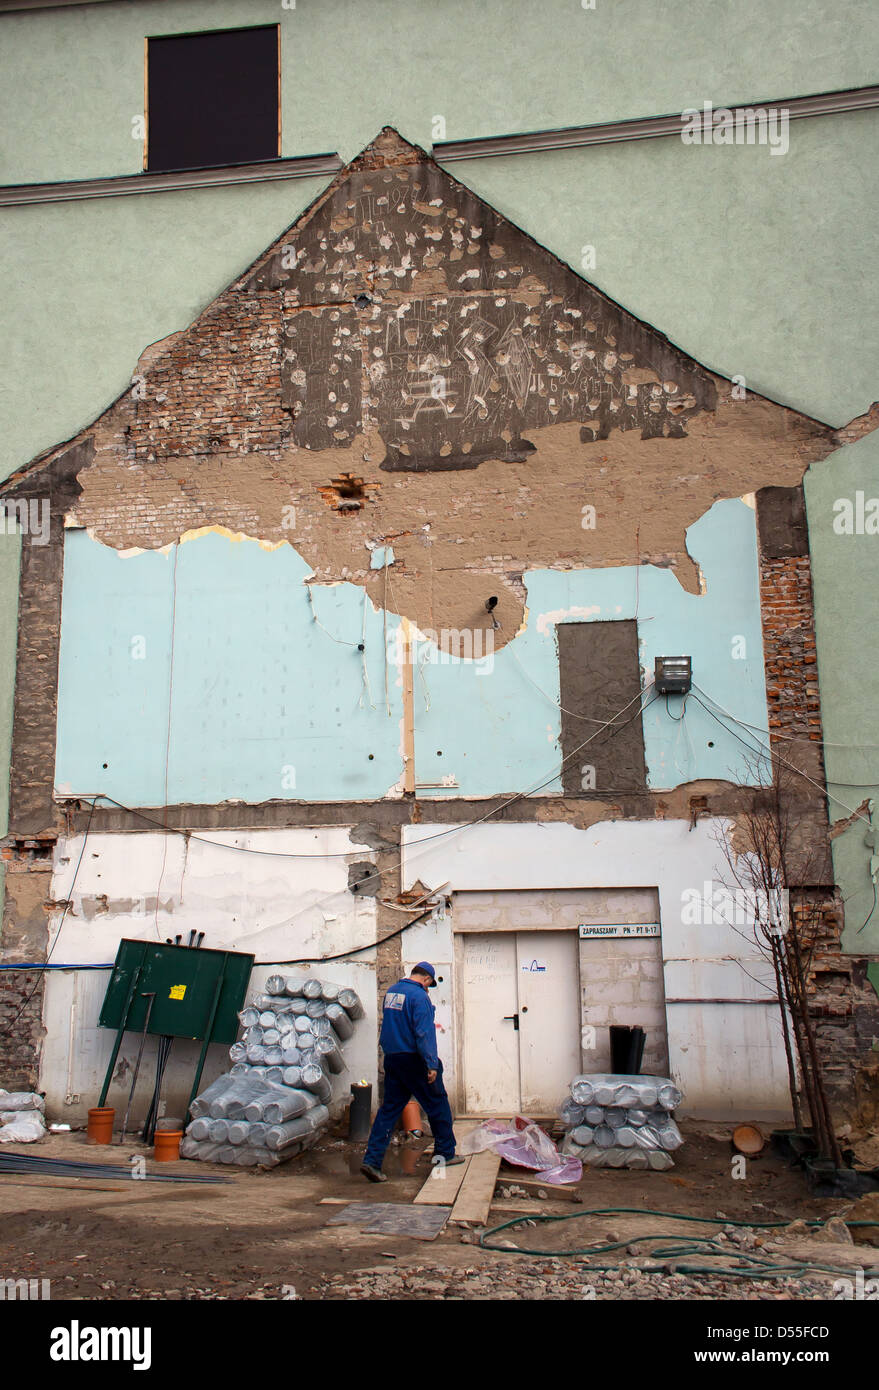 Poznan, Poland, outlines of a demolished house on the side of a building - Stock Image